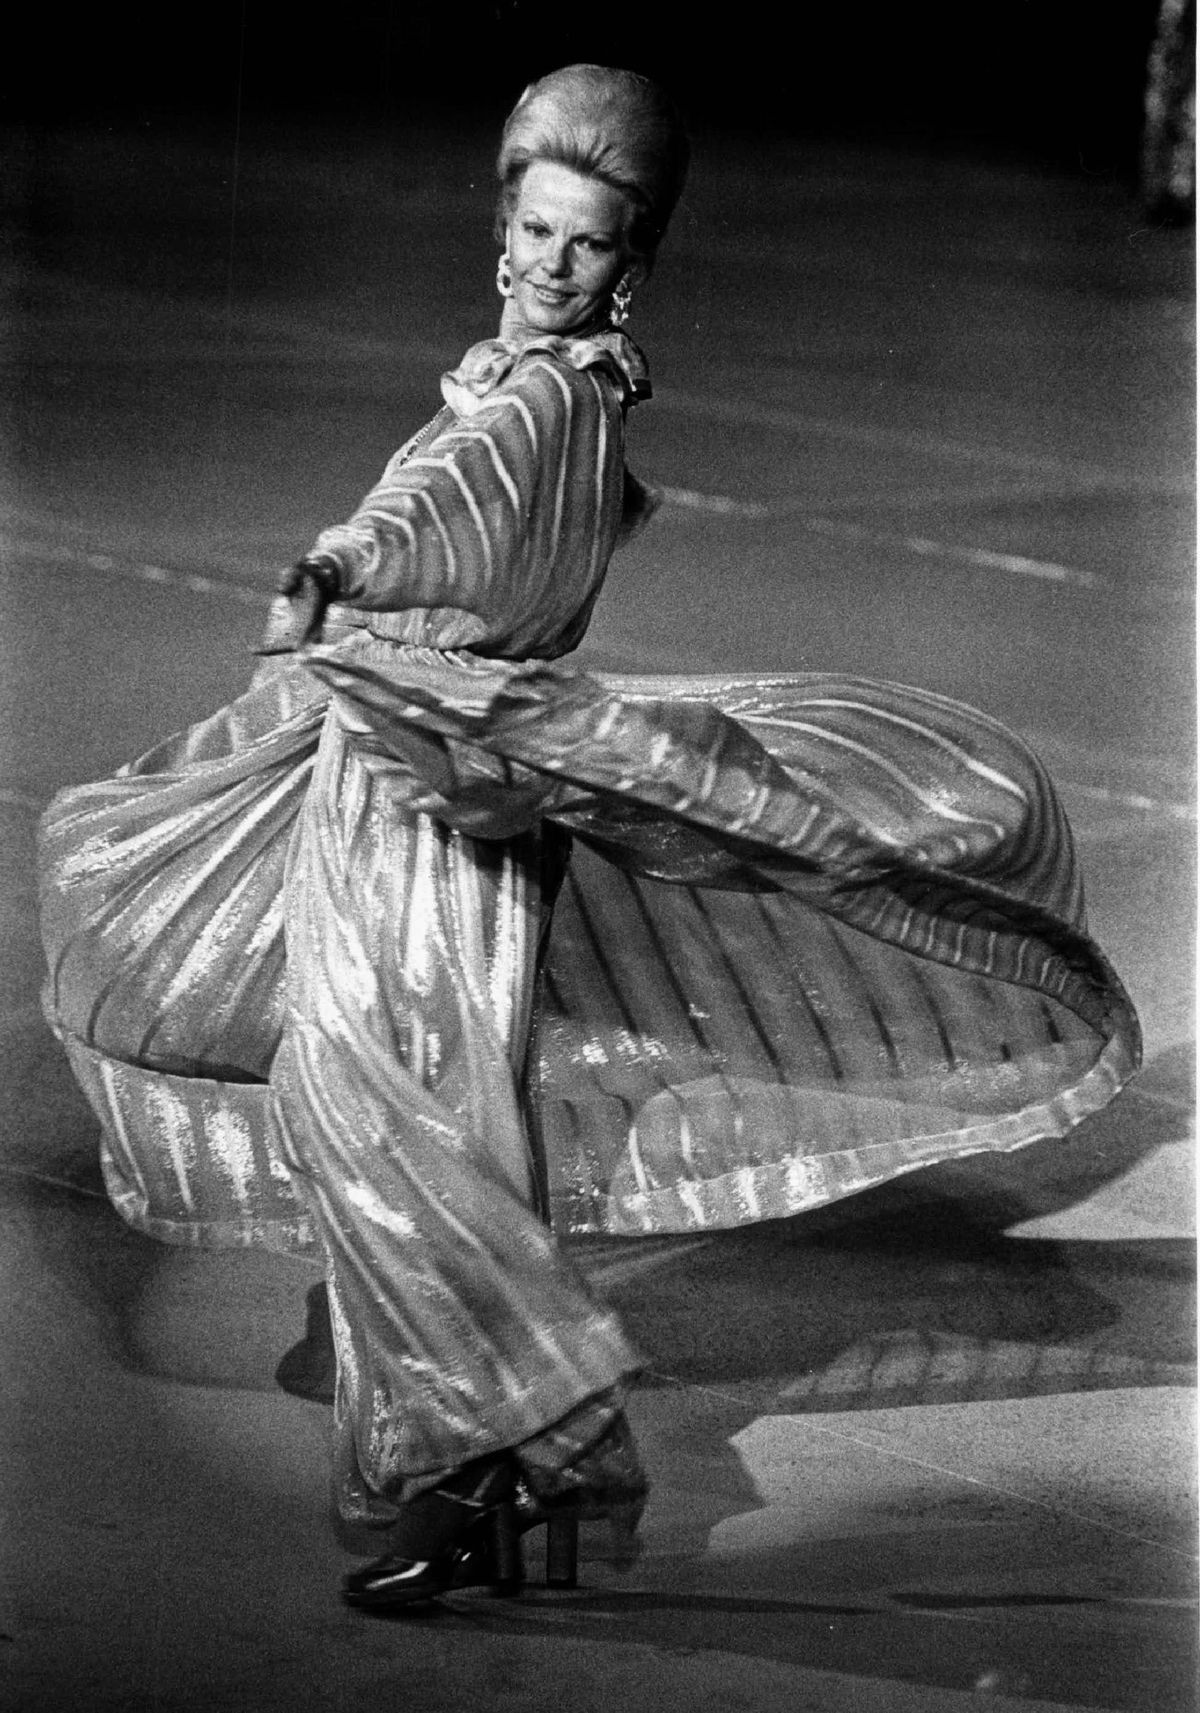 Bonnie Swearingen twirling in satin stripe chiffon gown at a charity fashion event.